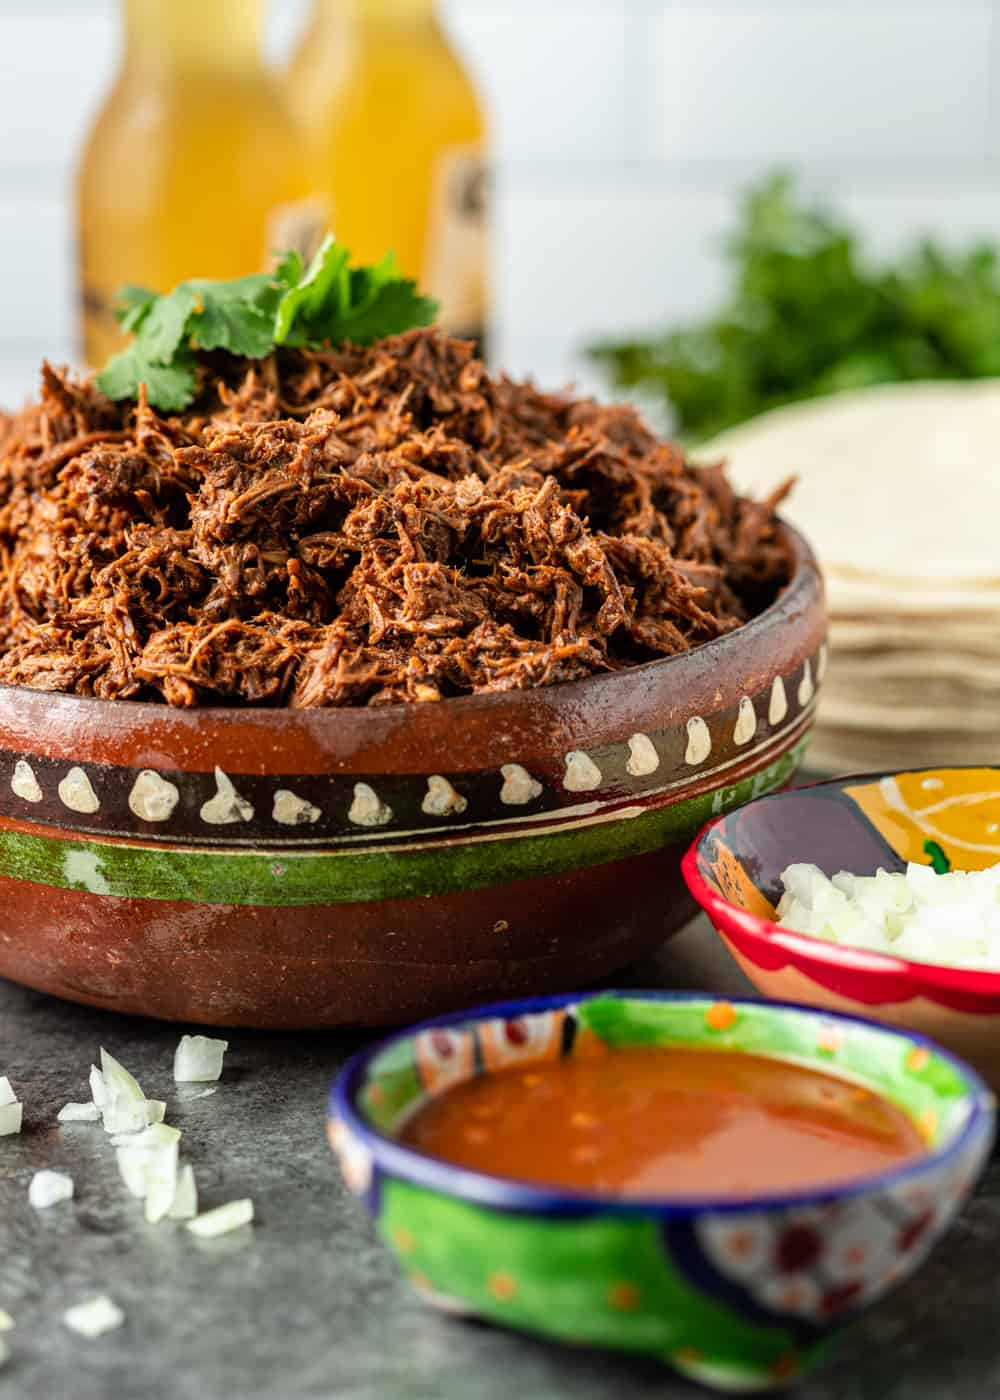 shredded birria beef in Mexican clay pottery with dipping sauce